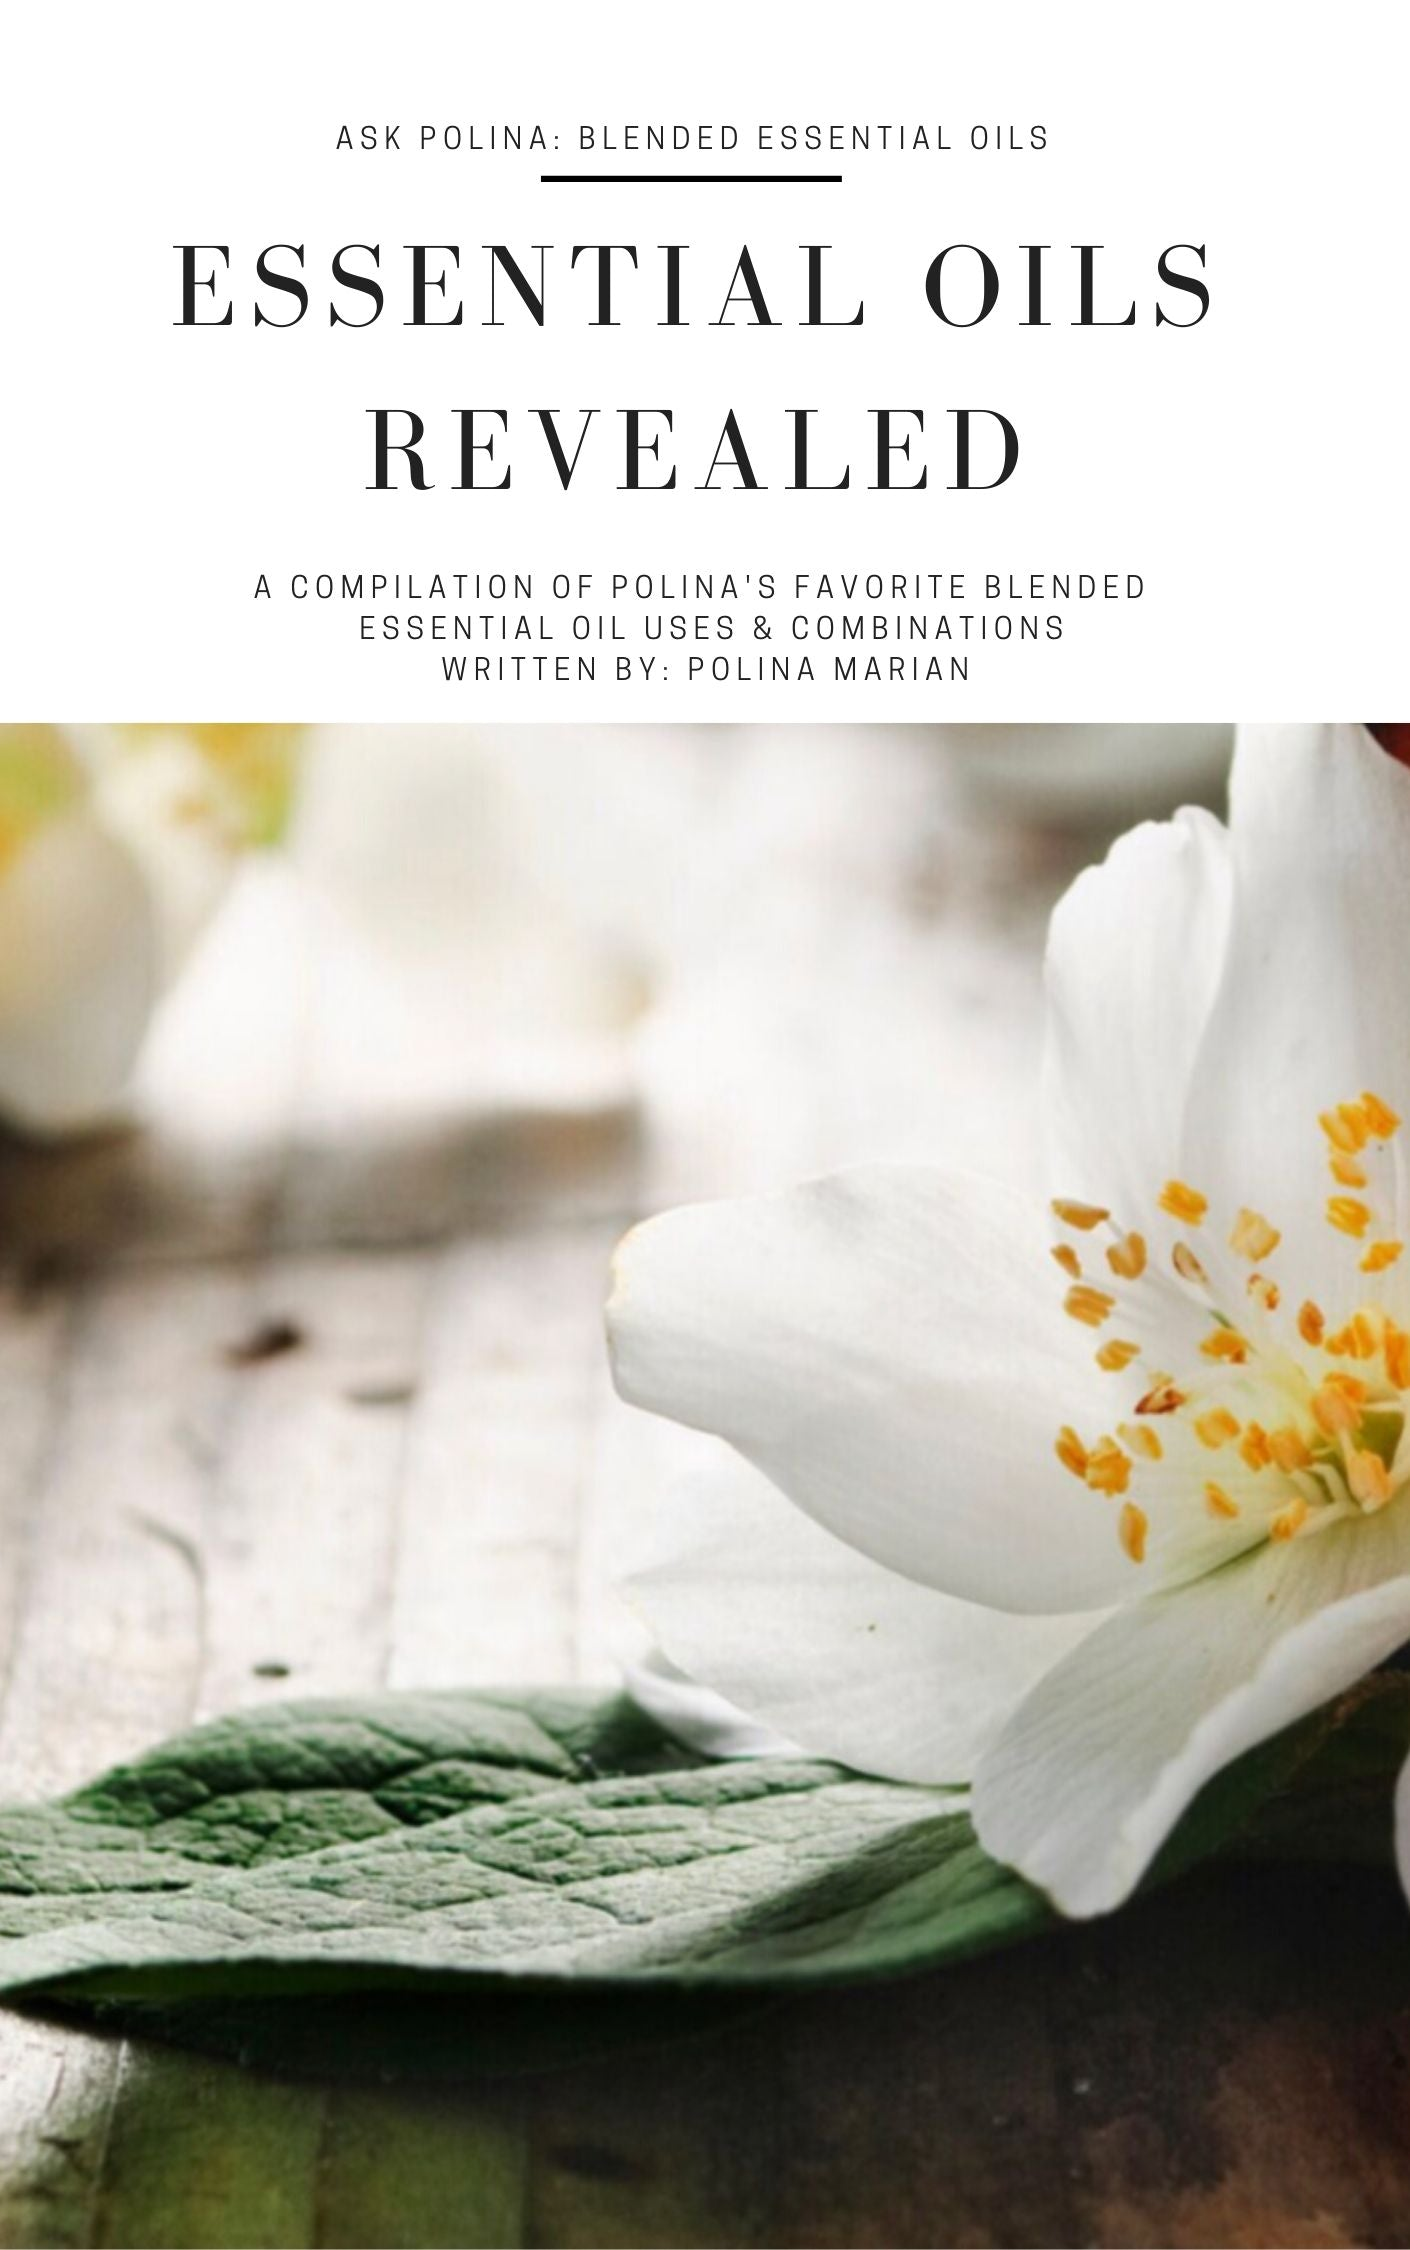 Essential Oils Revealed Ebook: Blended Oils